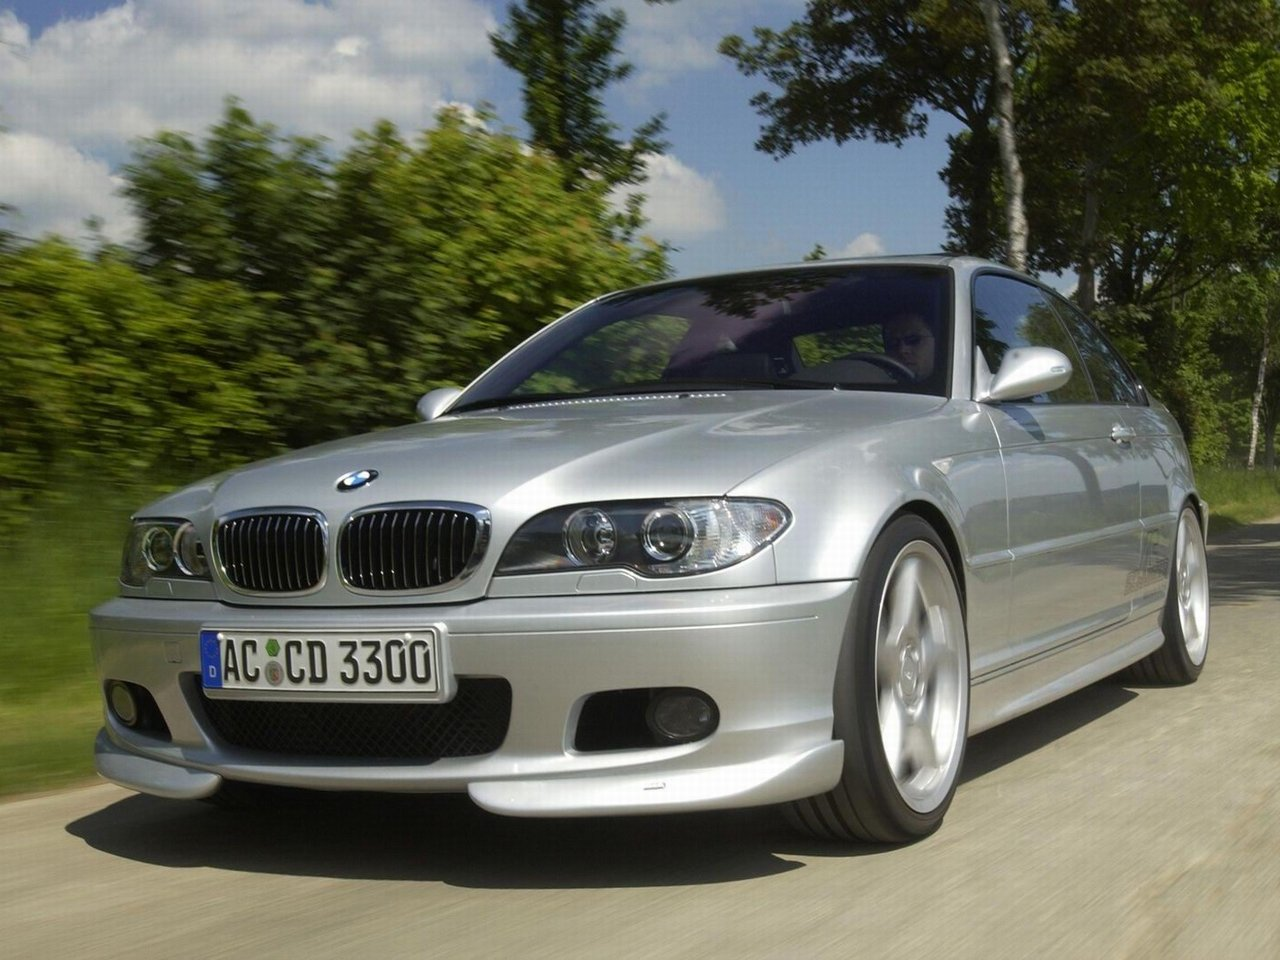 AC Schnitzer ACS3 Sport Package photo 14066